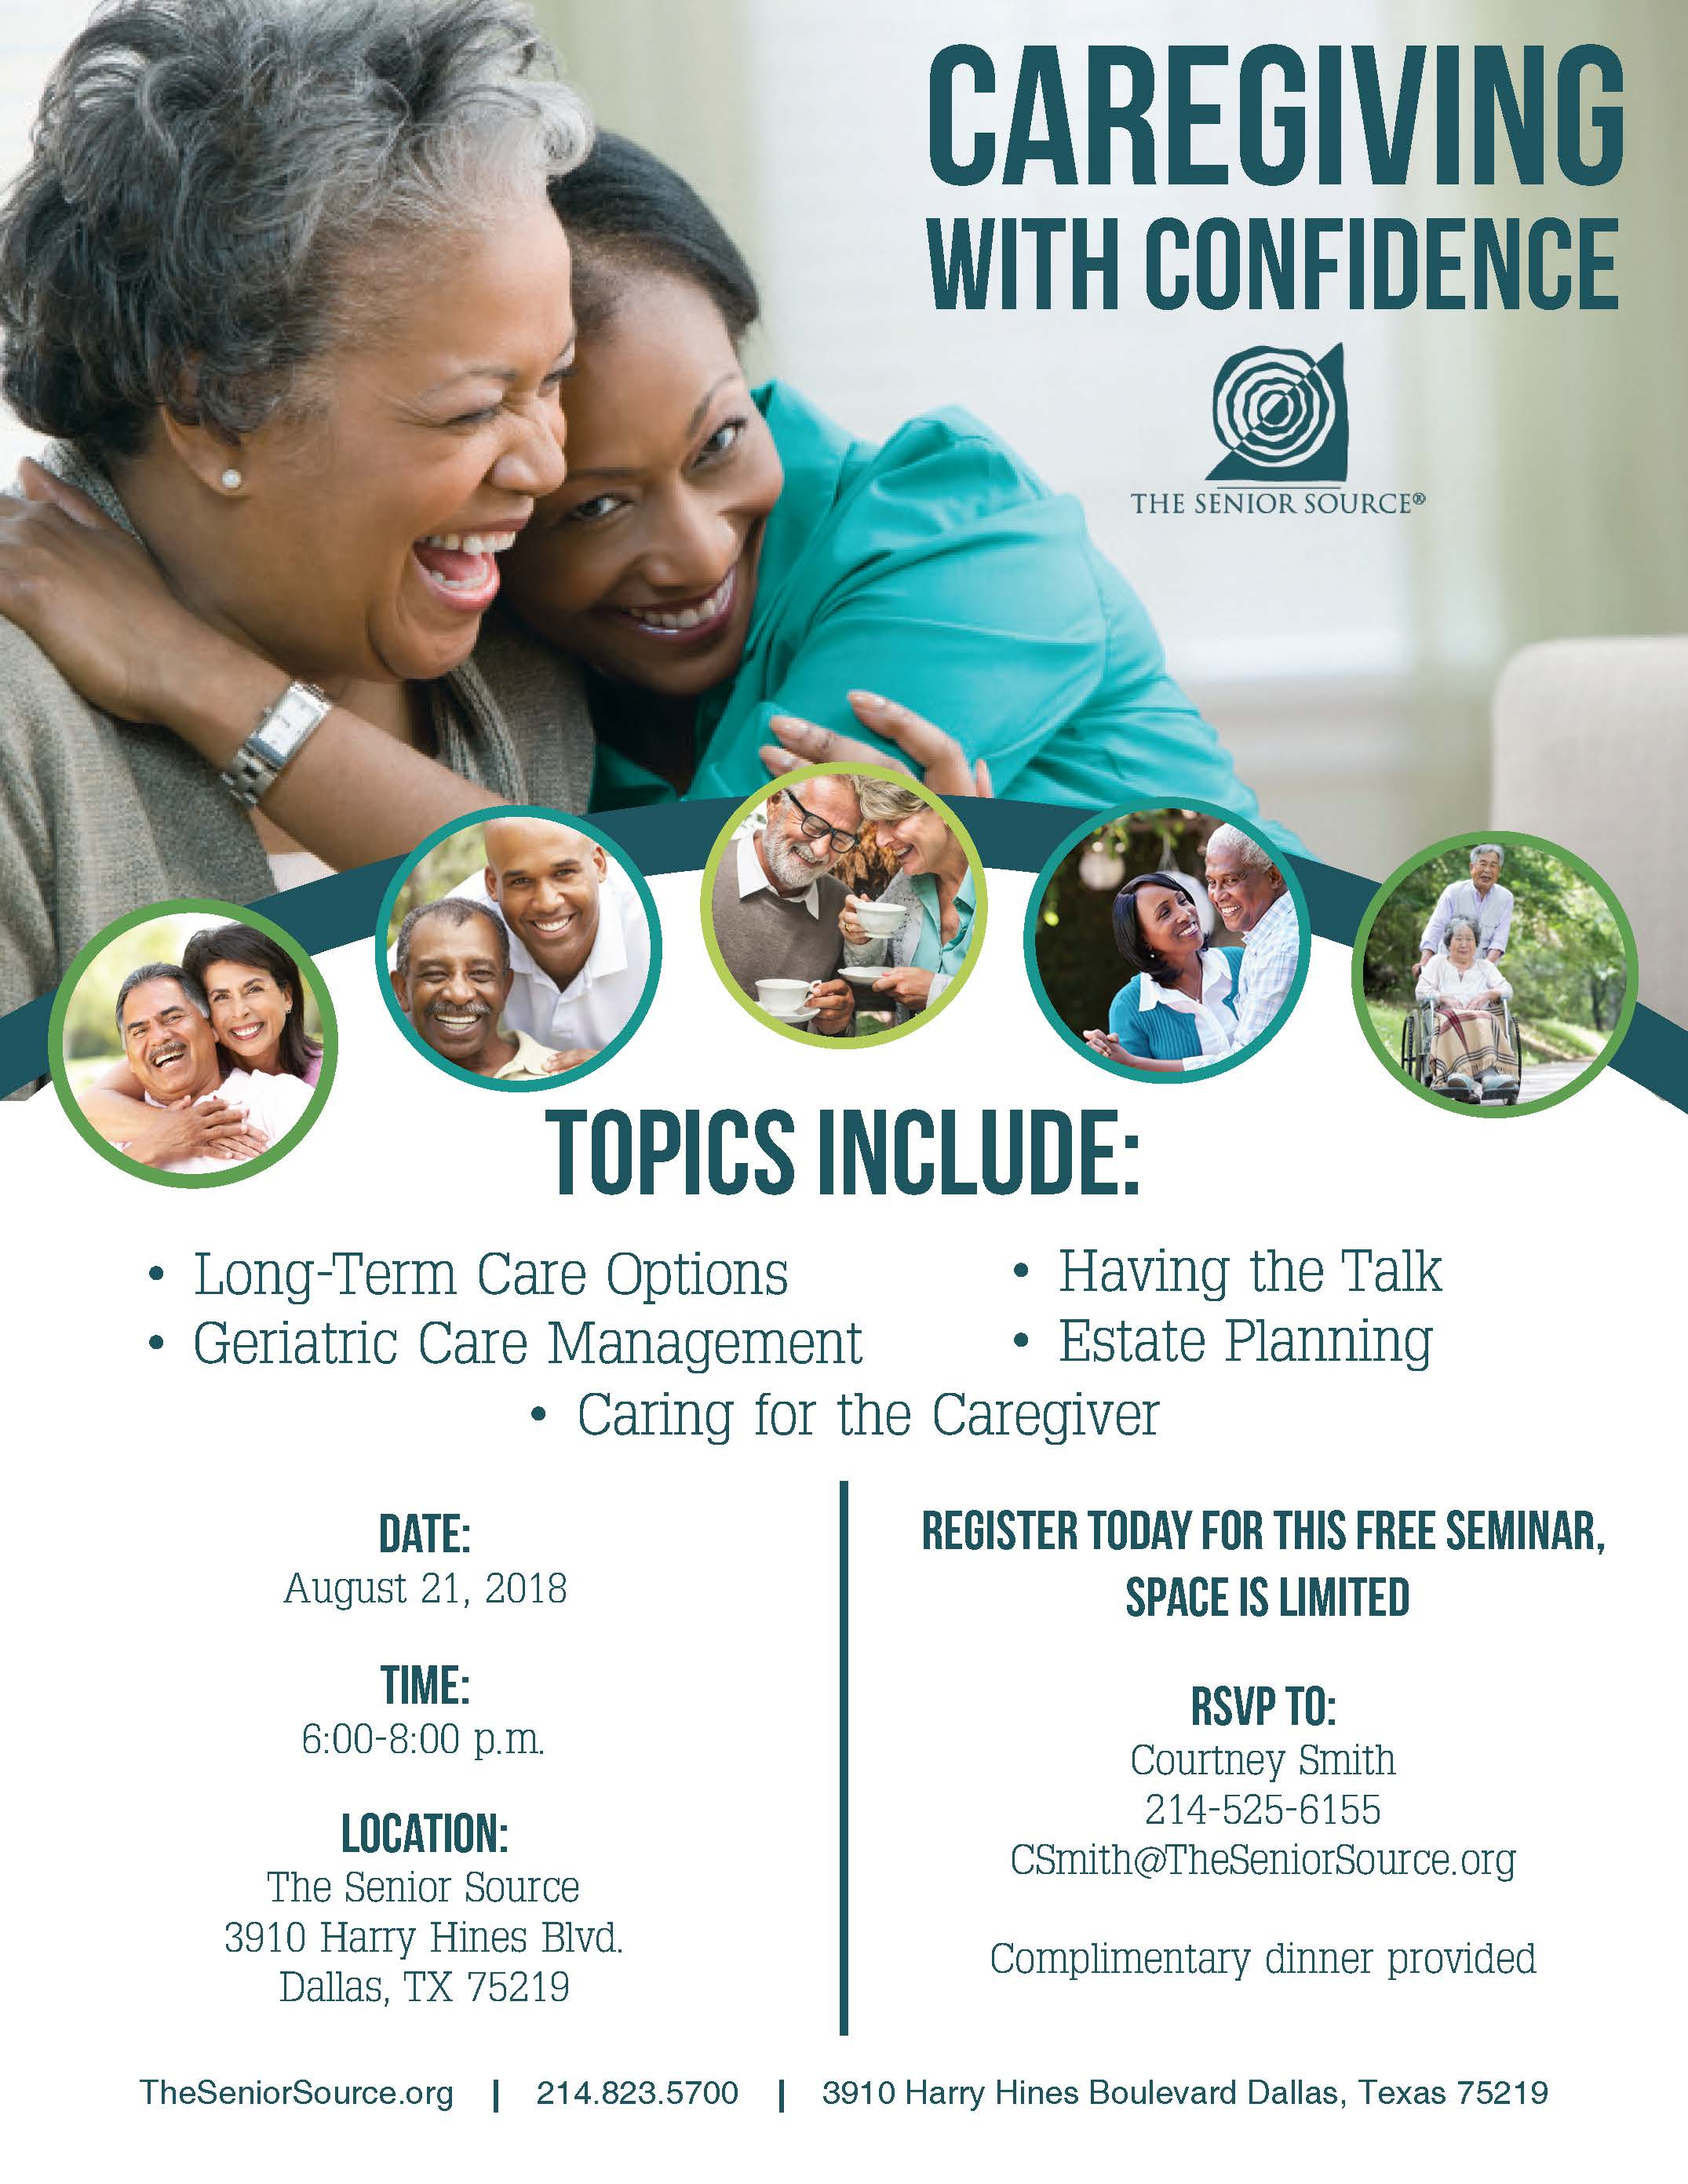 Caregiving with Confidence TSS flyer 8-18.jpg